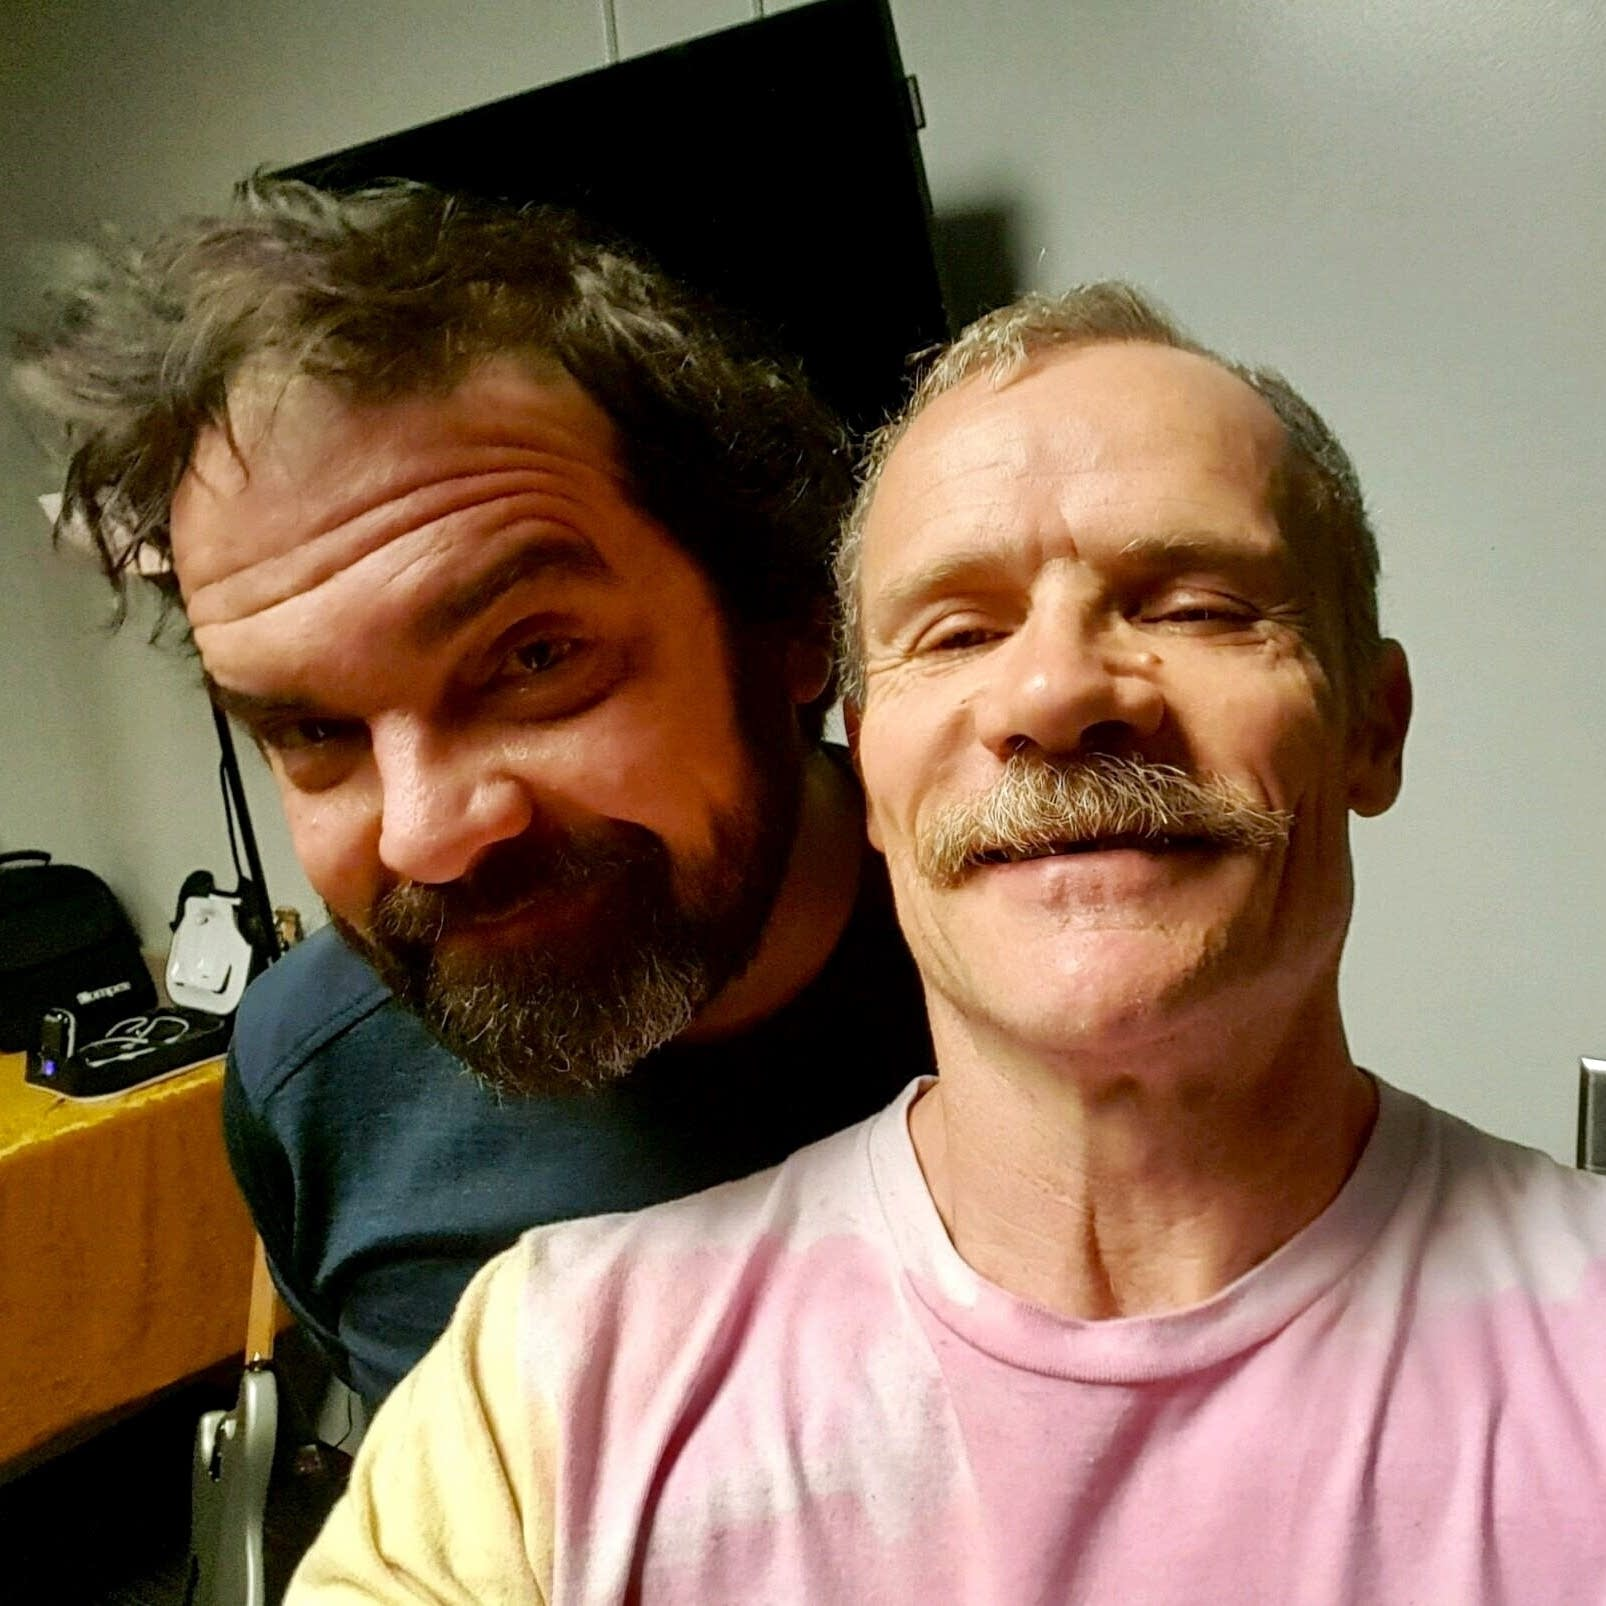 Brian Oake and Flea of Red Hot Chili Peppers